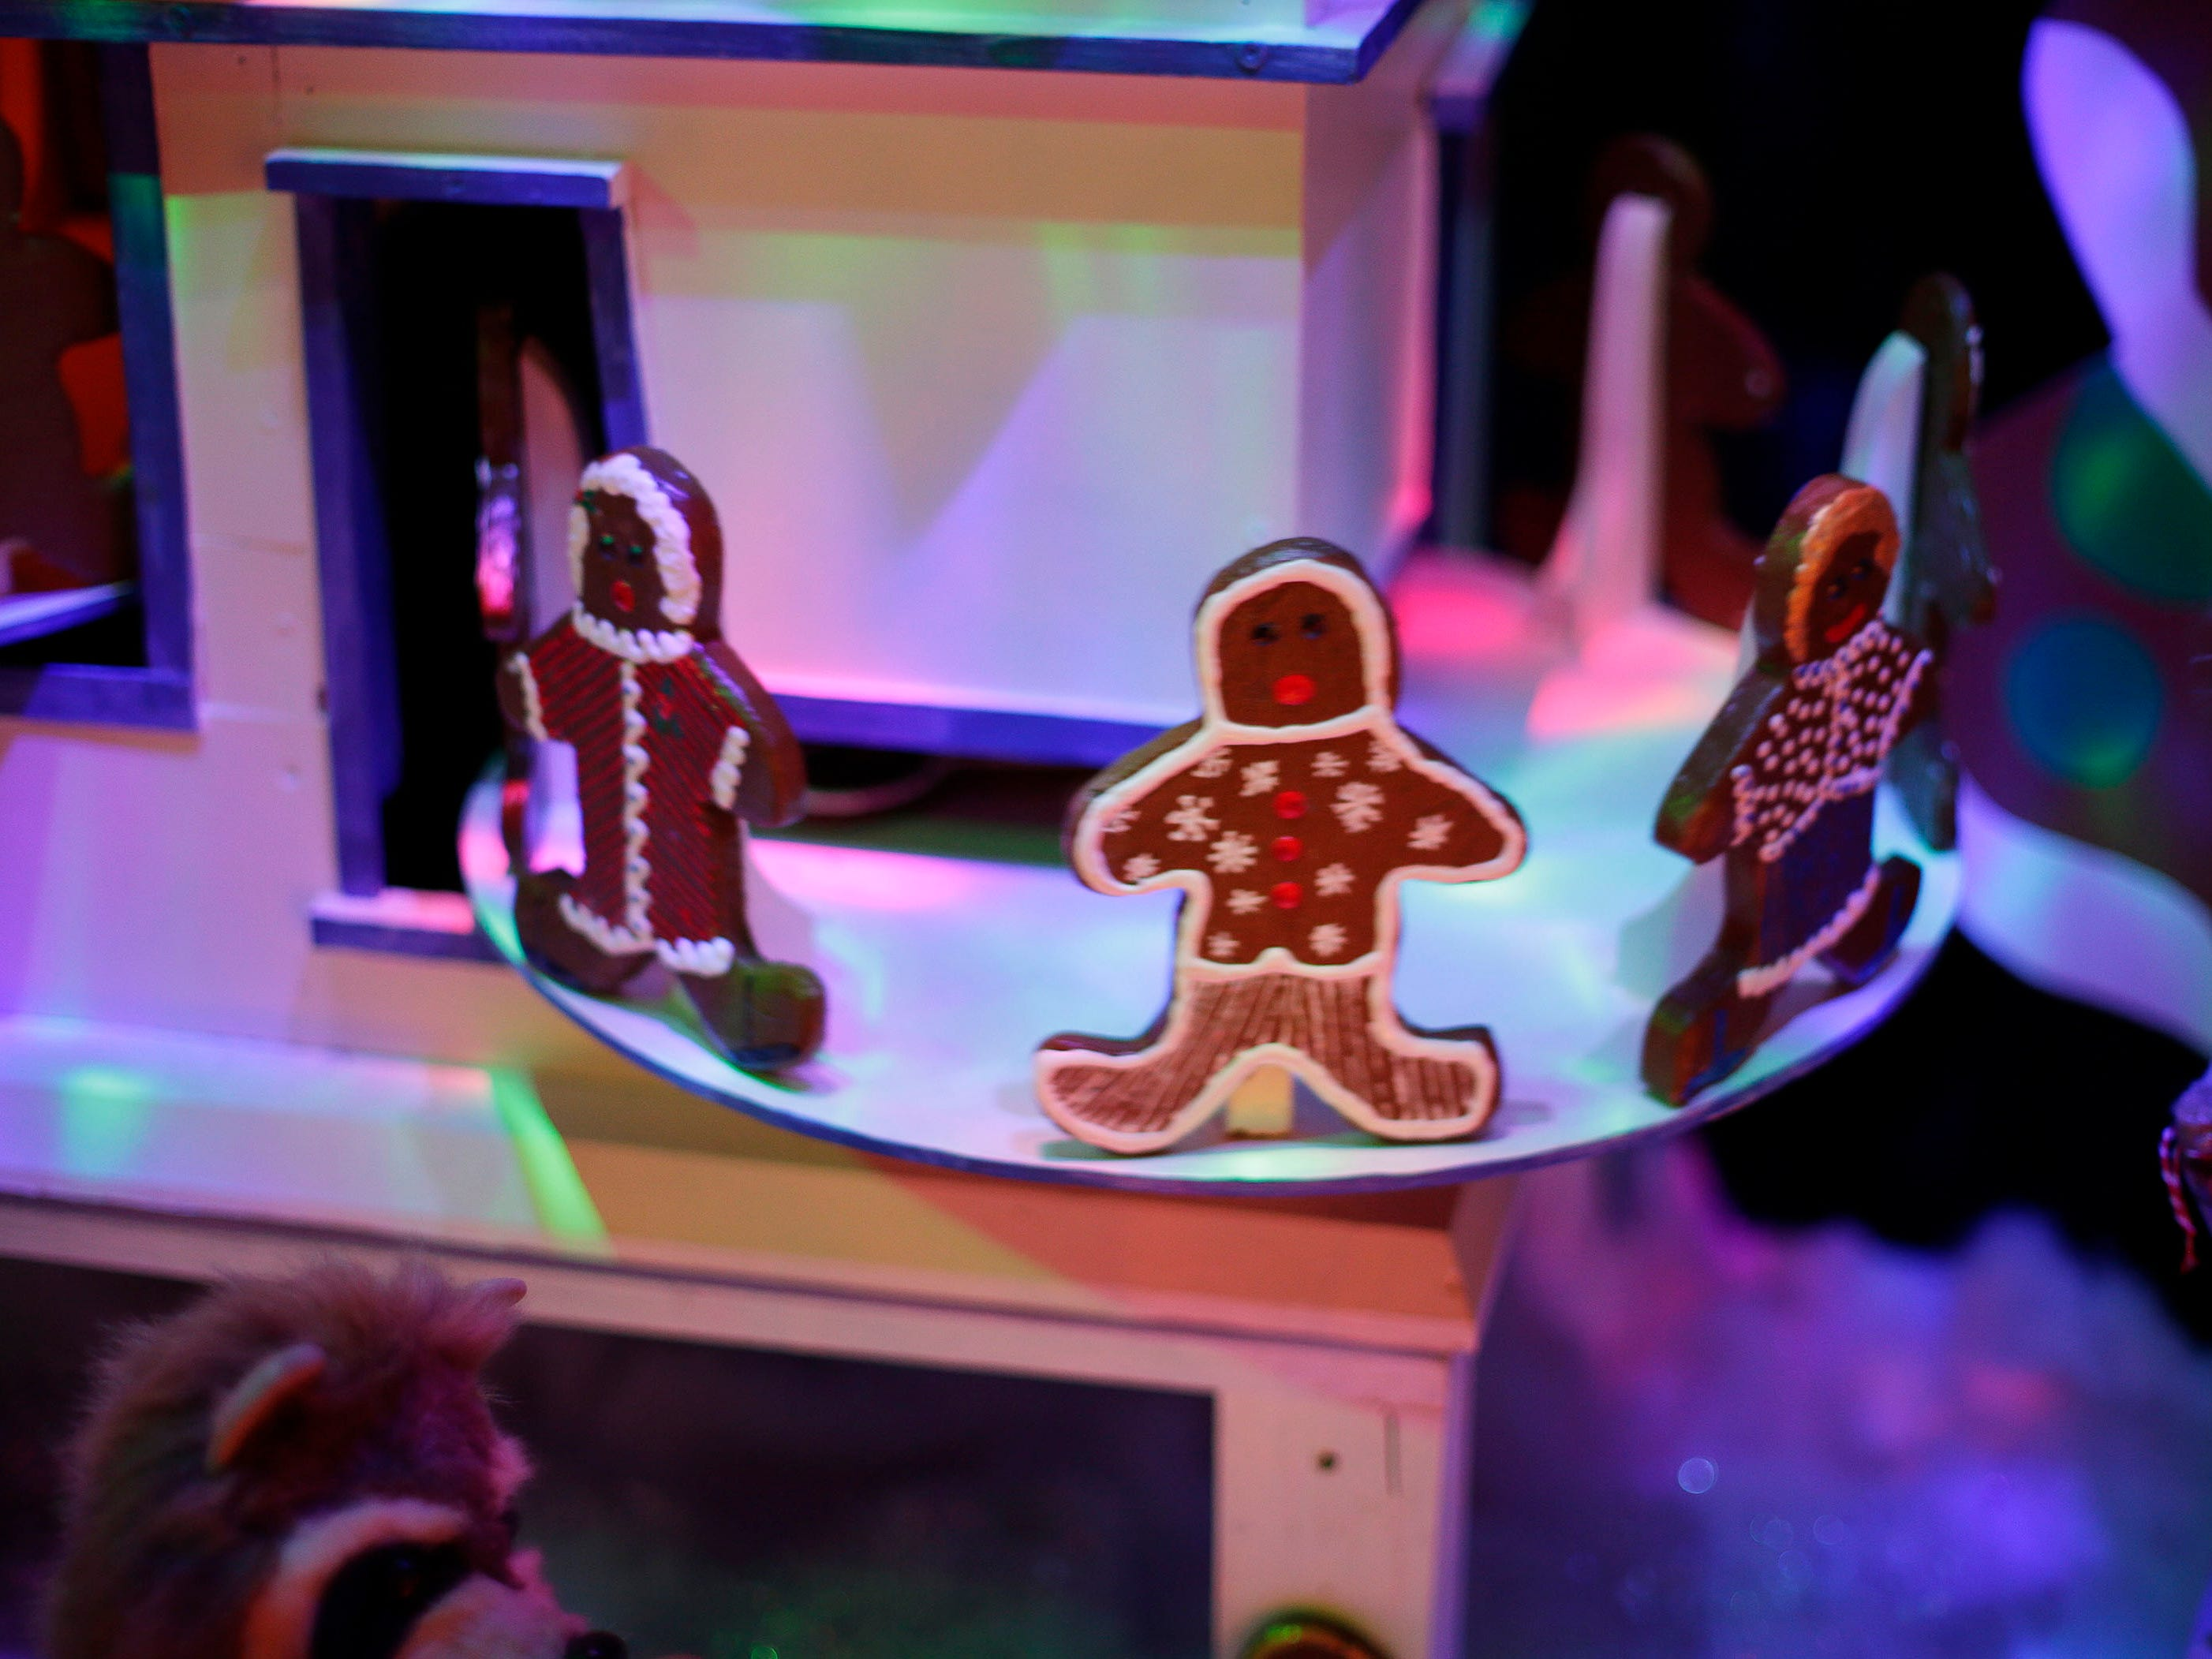 A gingerbread cookie machine produces endless cookies at the Sheboygan County Historical Museum's Holiday Memories, Friday, November 23, 2018, in Sheboygan, Wis. The animation was part of the classic Prange's animations collection the museum has.